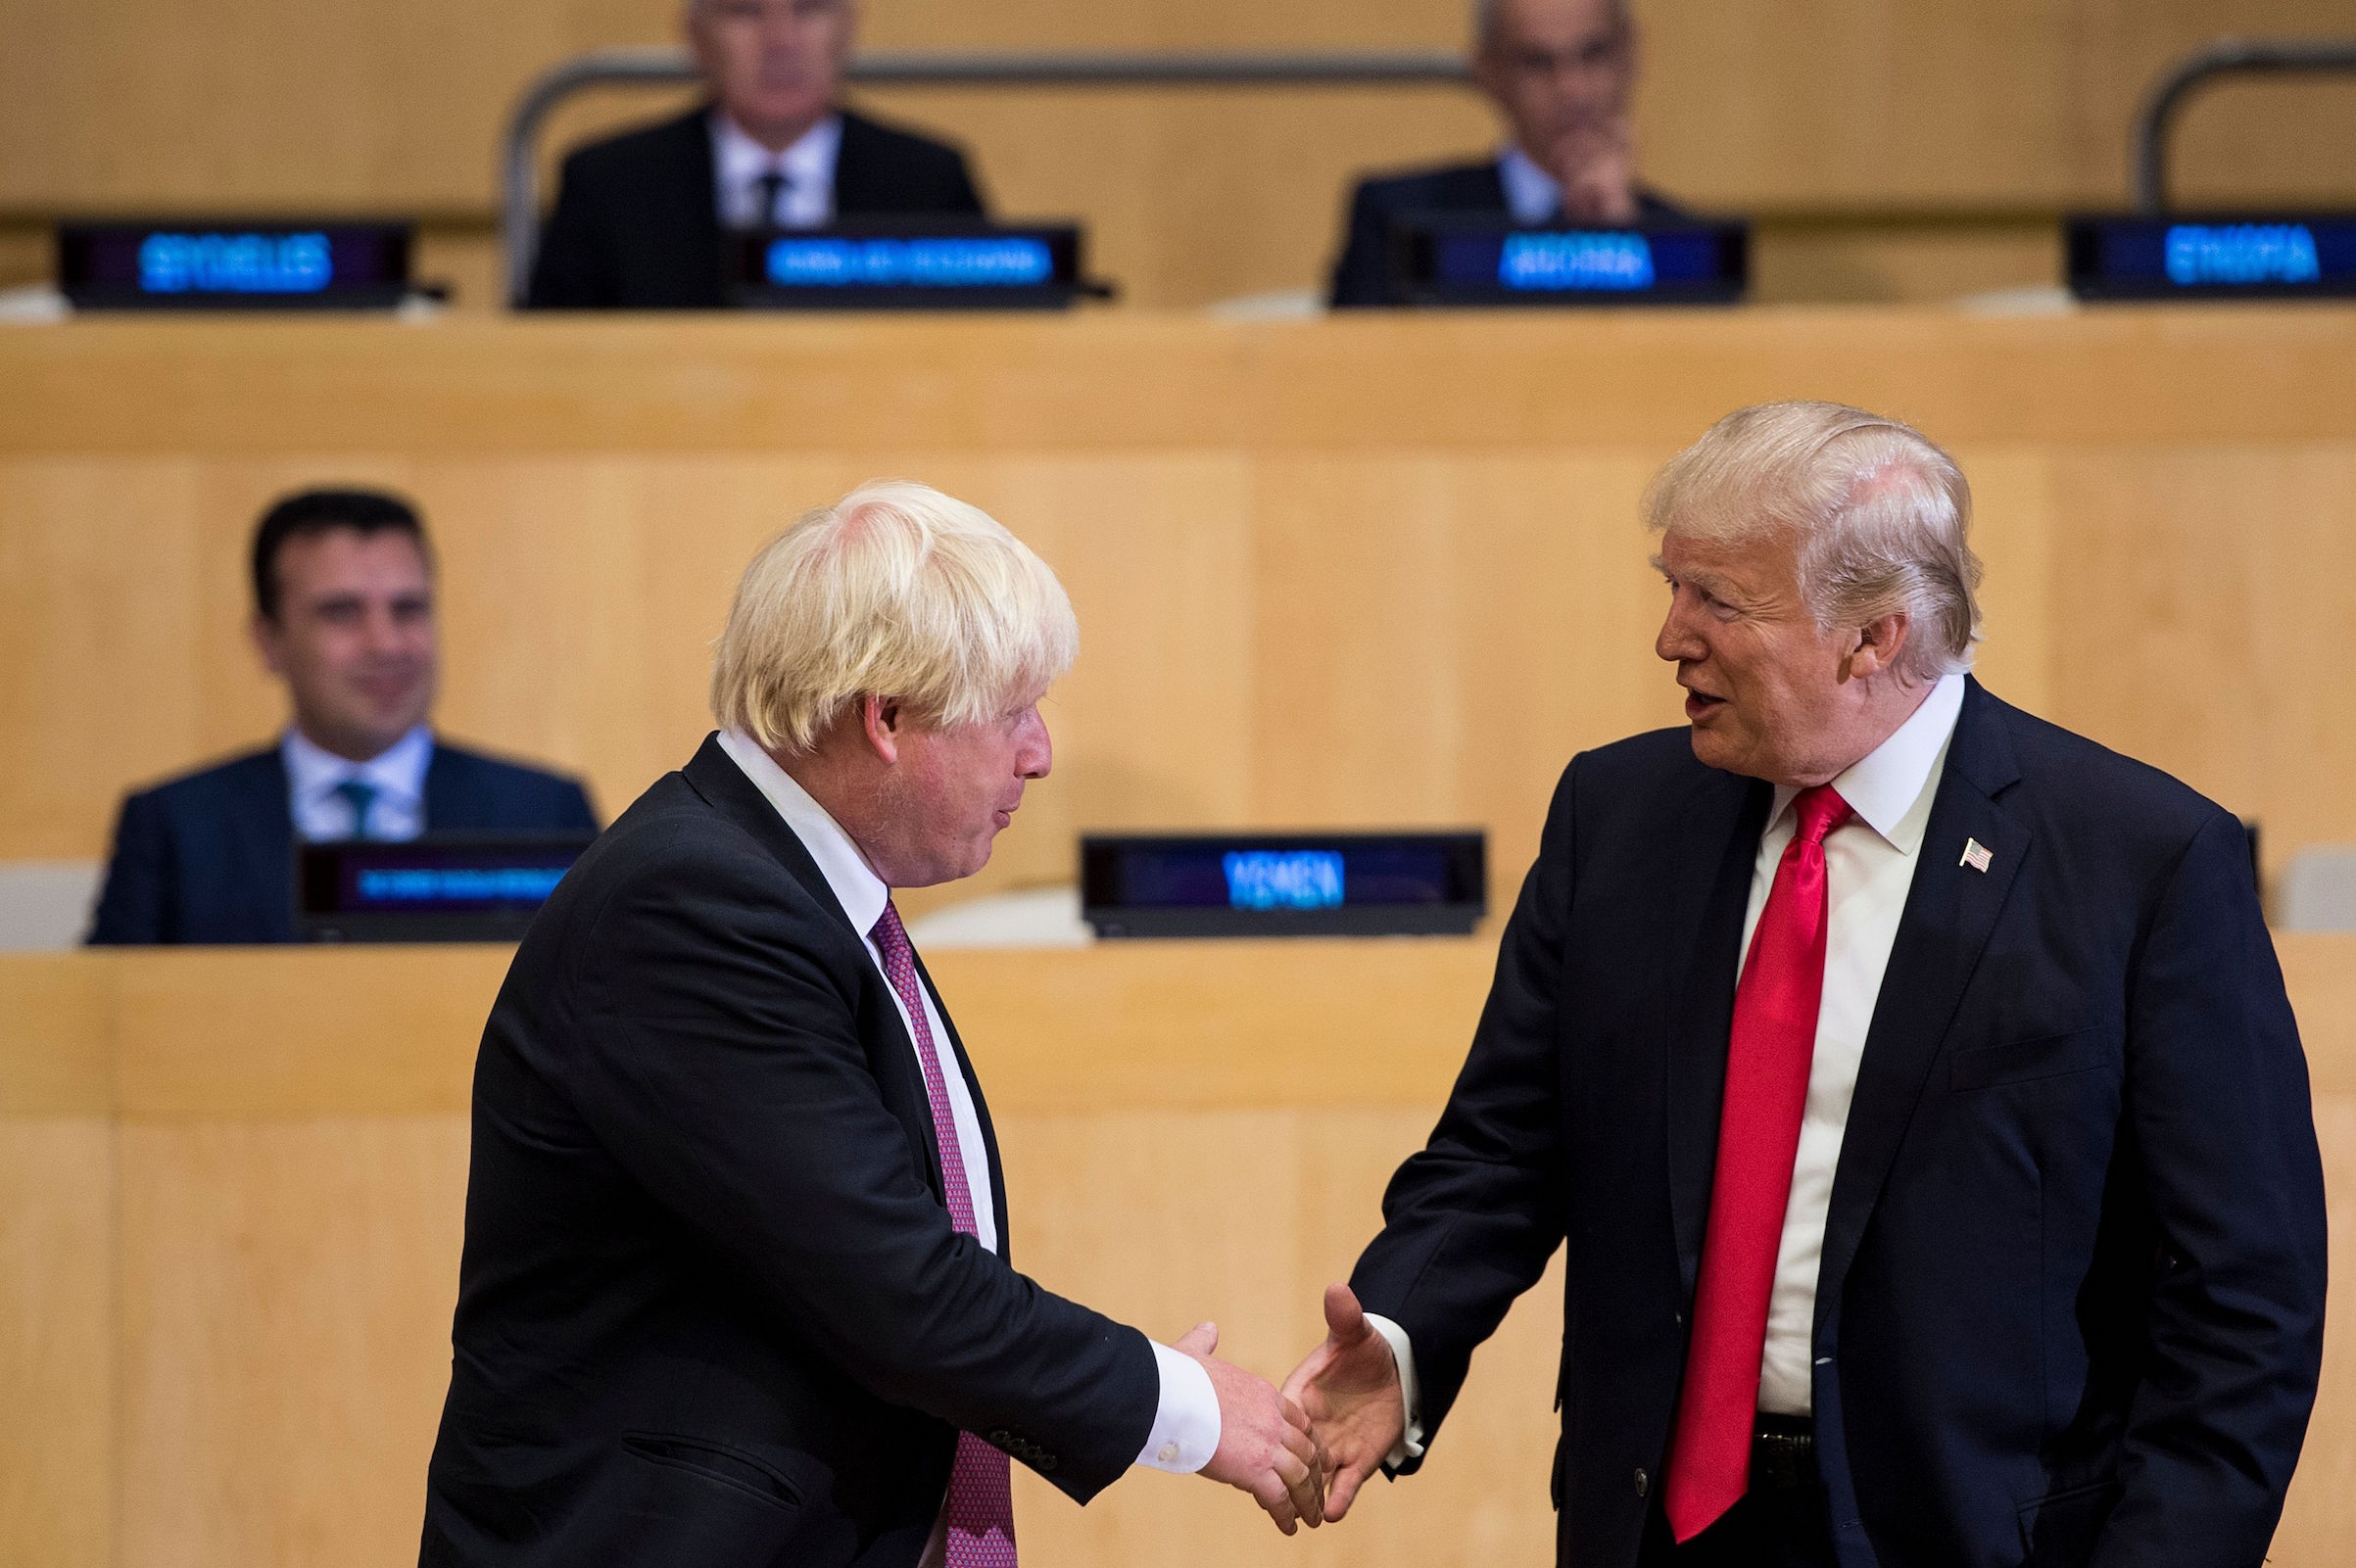 Boris Johnson (L), then British Foreign Secretary, and US President Donald Trump greet before a meeting on United Nations Reform at UN headquarters in New York City on Sept. 18, 2017.